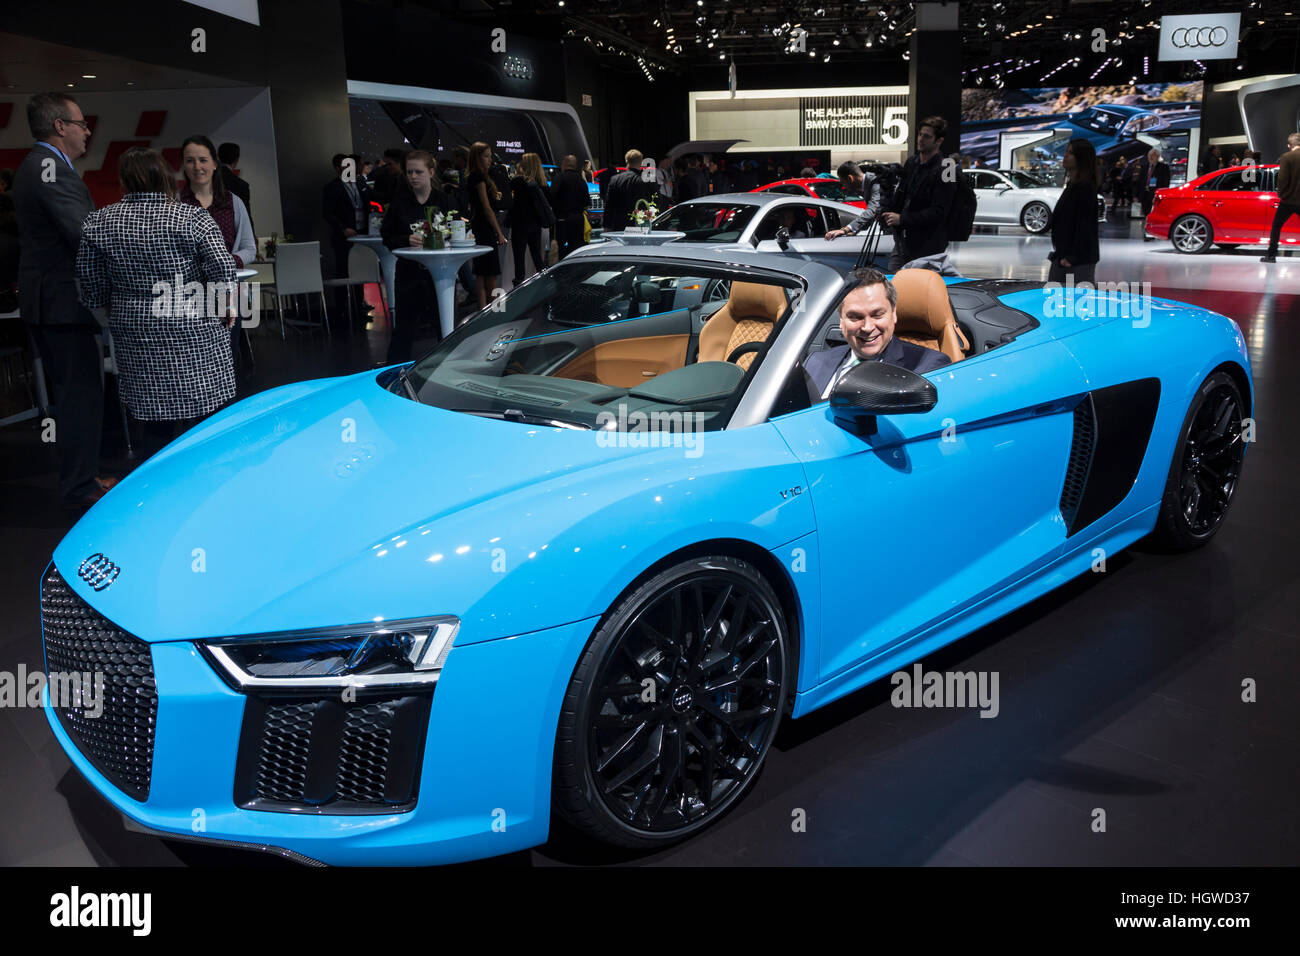 Detroit, Michigan - The Audi R8 V10 convertible on display at the North American International Auto Show. - Stock Image